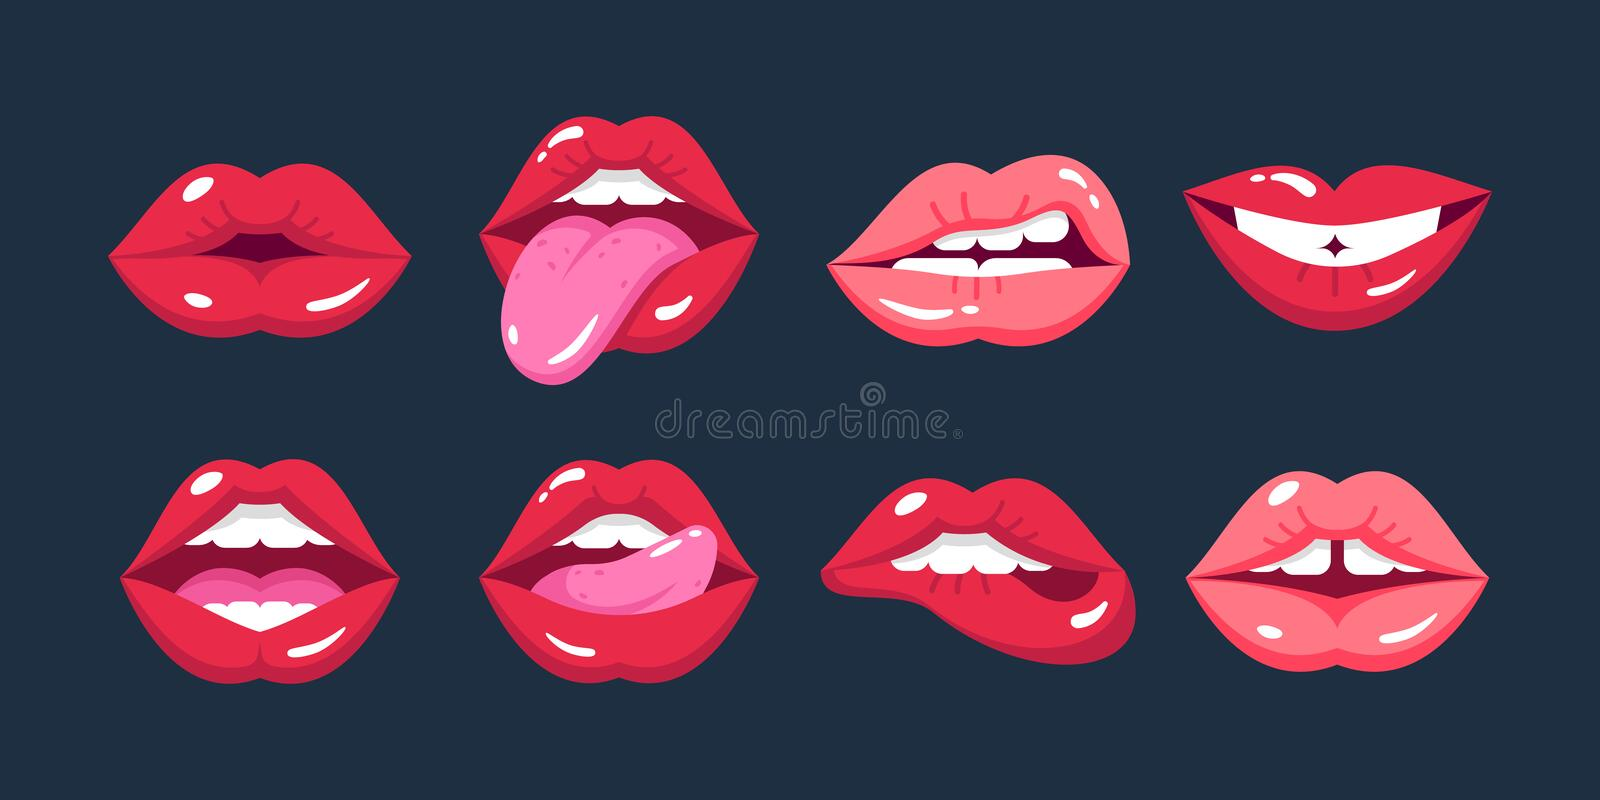 Painted female lips, in cartoon style, in different emotions, expressions. stock illustration